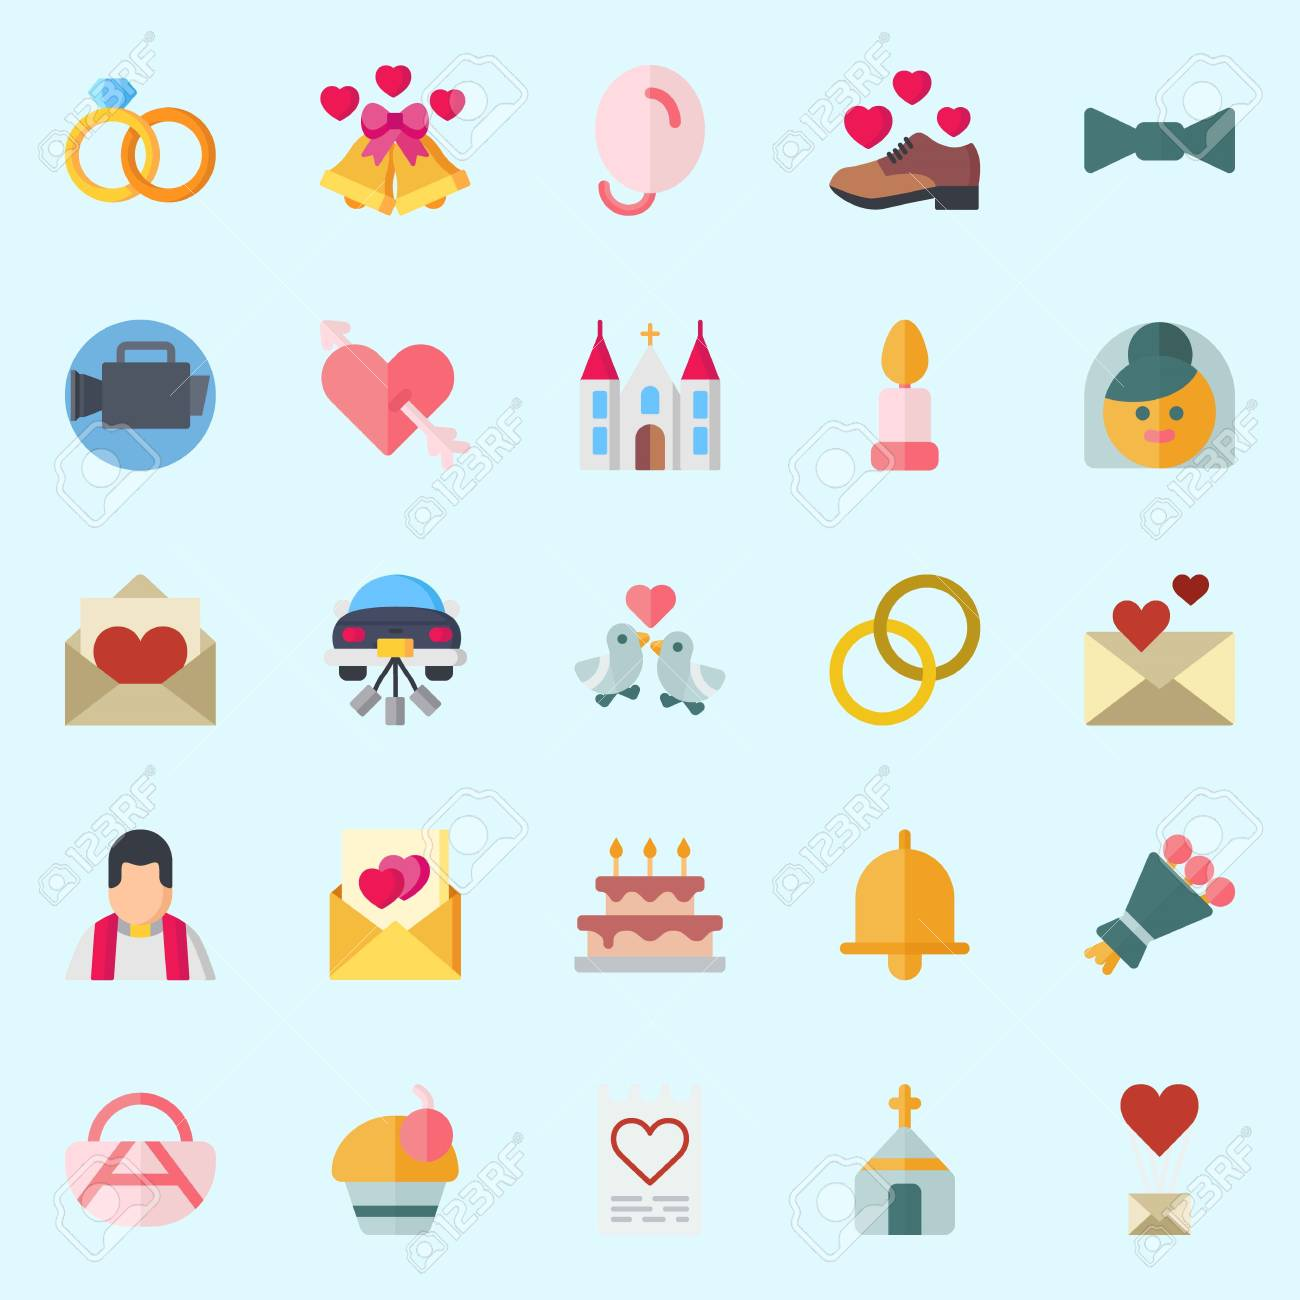 hight resolution of icon set about wedding with church priest love letter shoe wedding bells